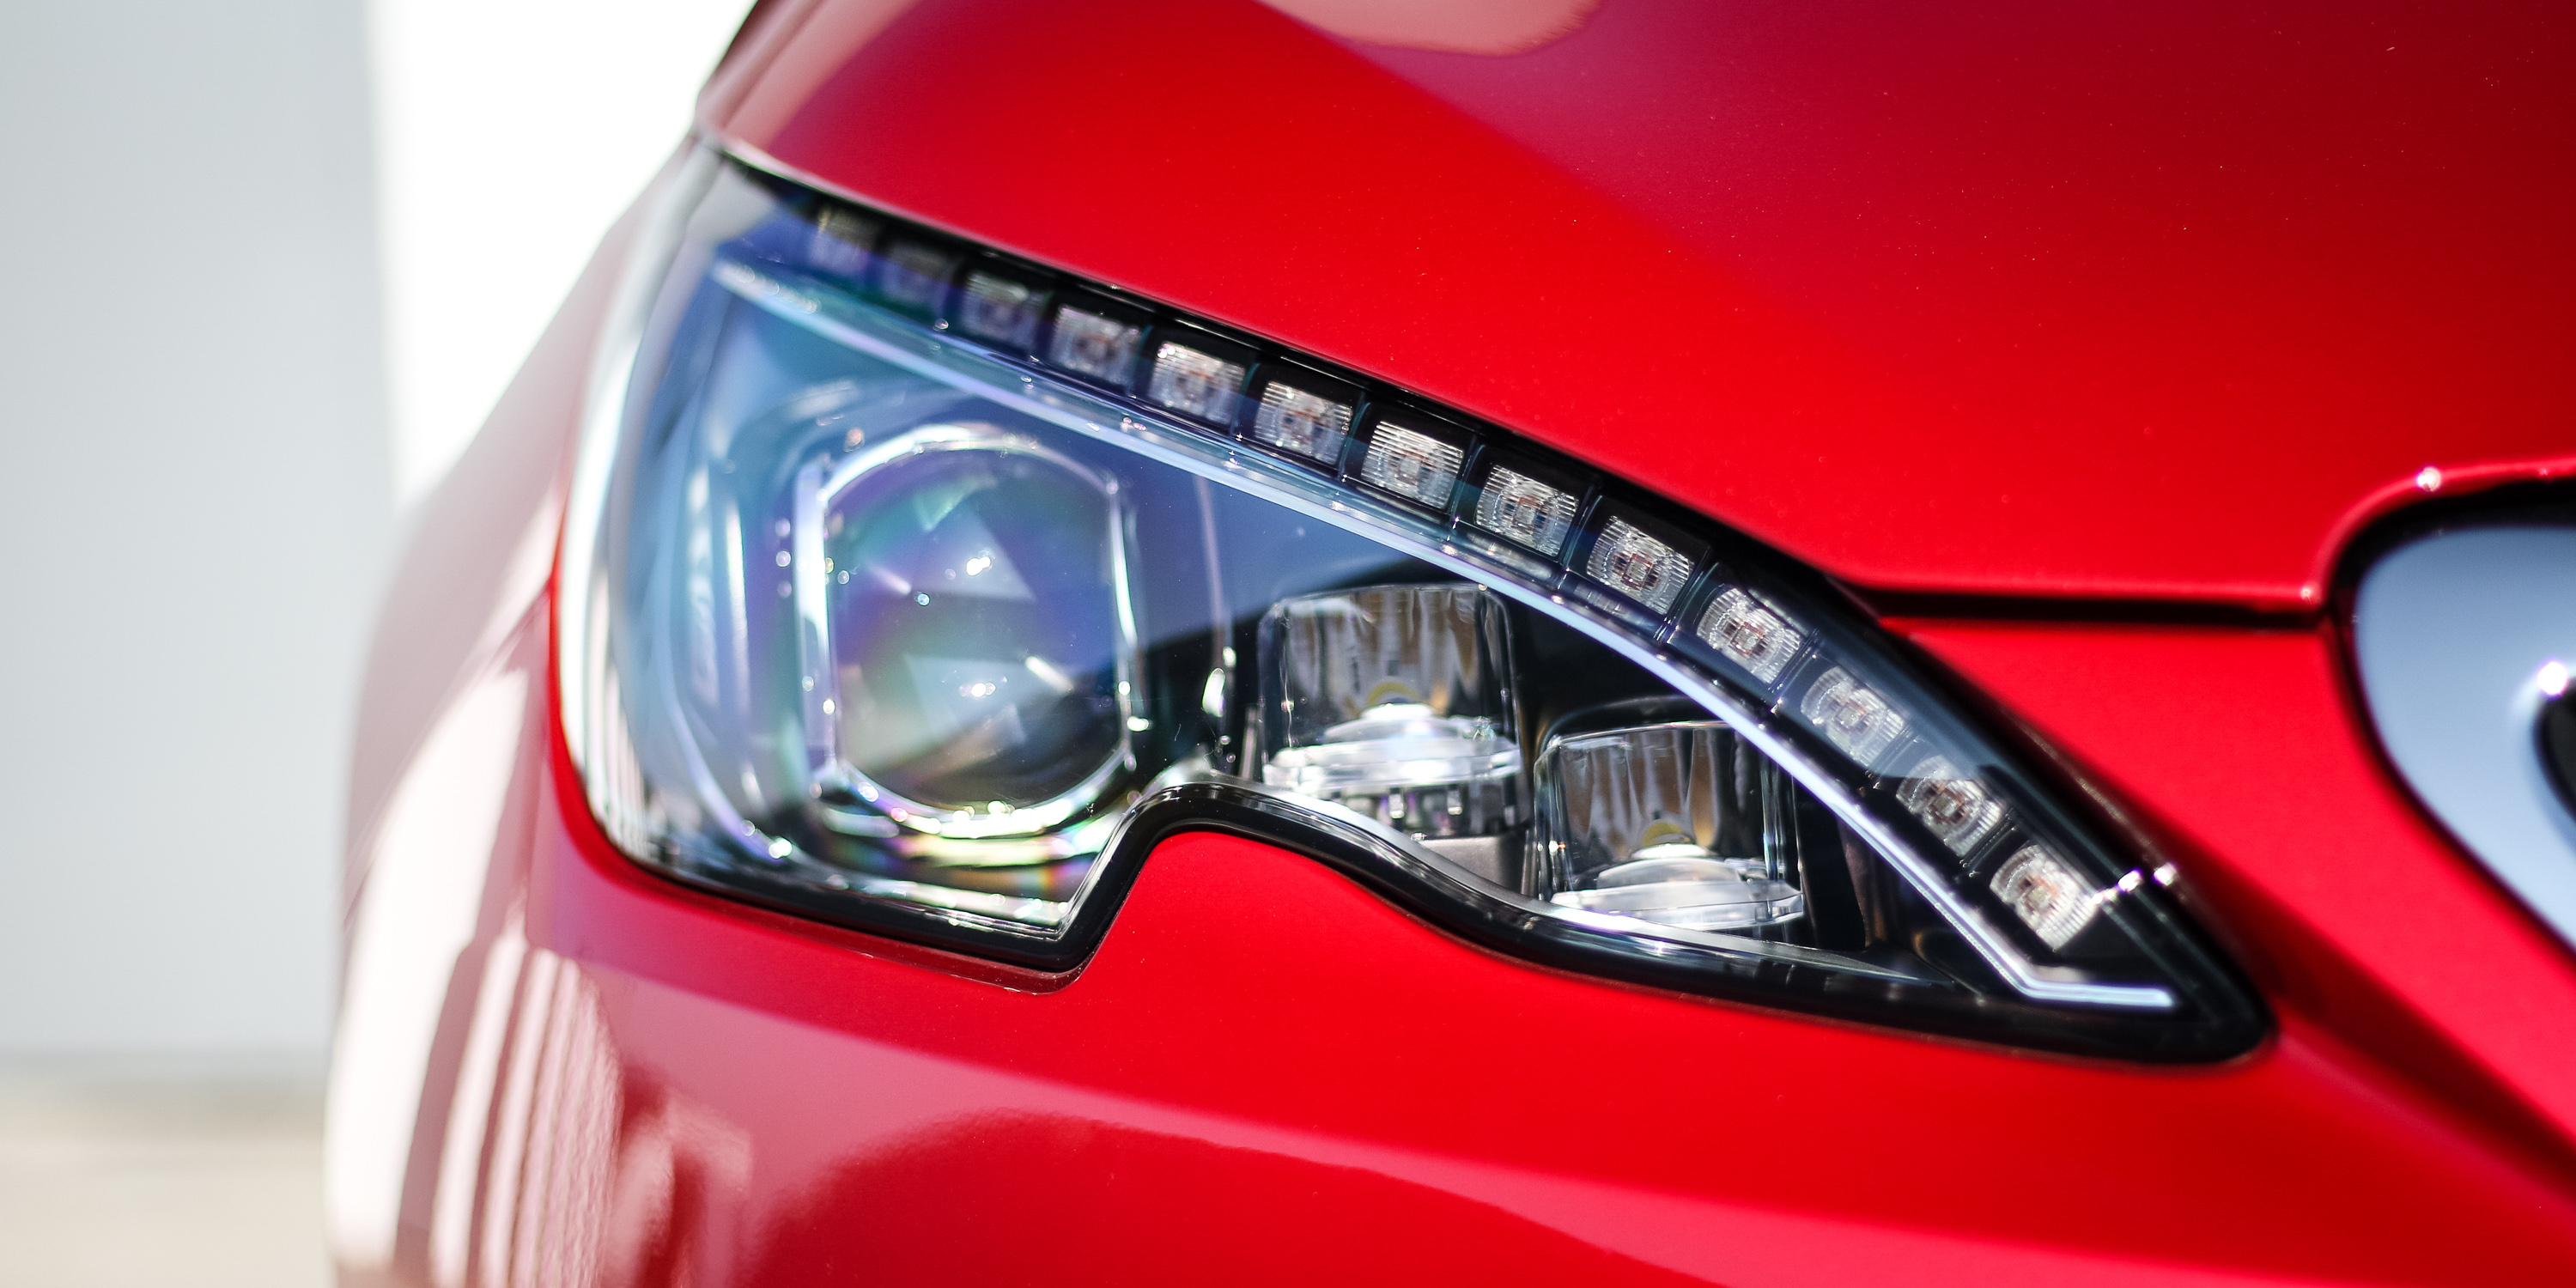 2016 Peugeot 308 Gti Headlamp (View 13 of 15)